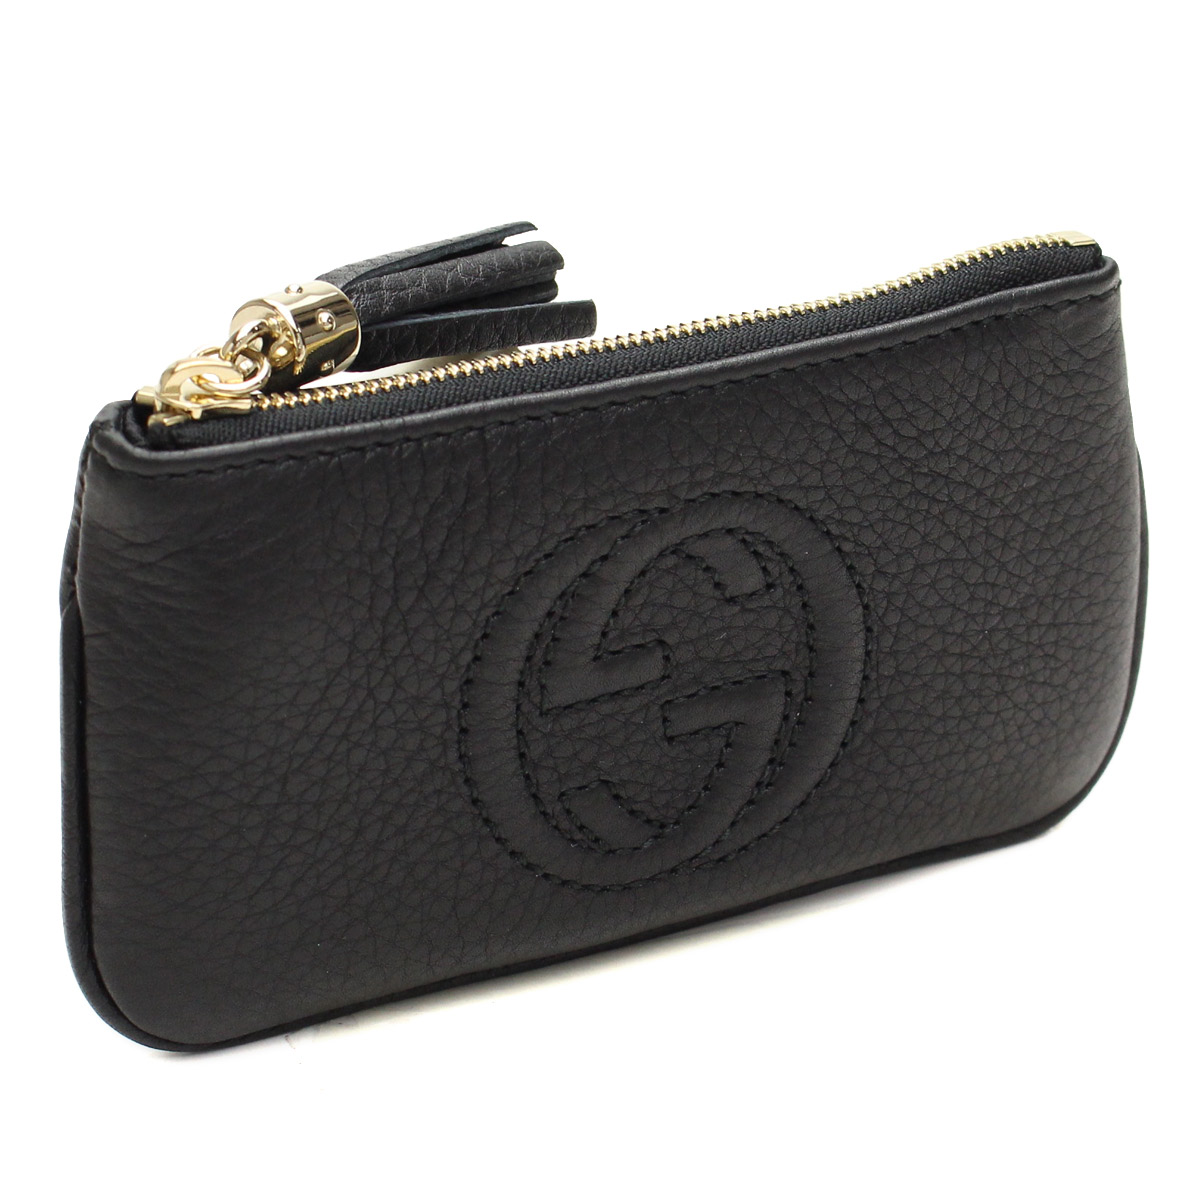 d87b9e71dbdb8e Bighit The total brand wholesale  Gucci (GUCCI) key ring with coin purse  354358-A7M 0G-1000 black( taxfree send by EMS authentic A brand new item )  ...